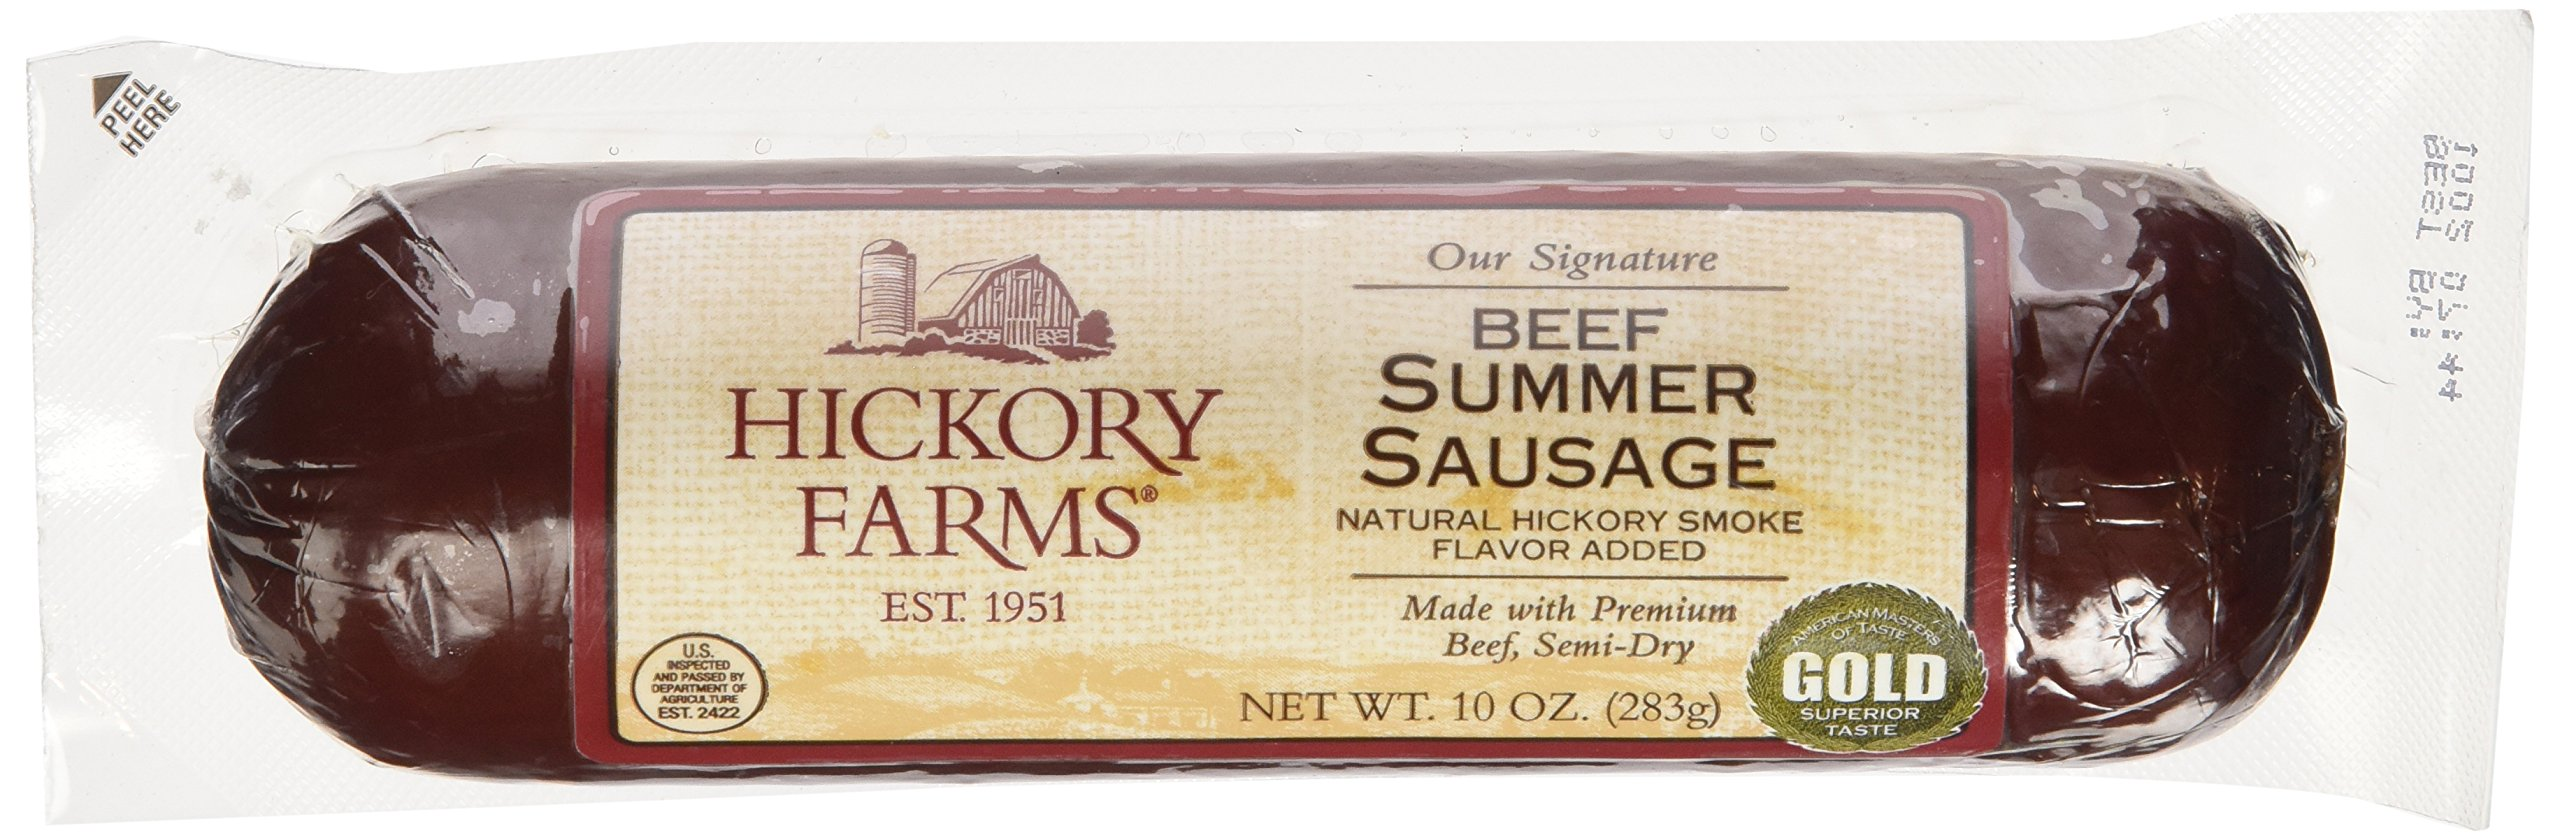 Hickory Farms Beef Summer Sausage